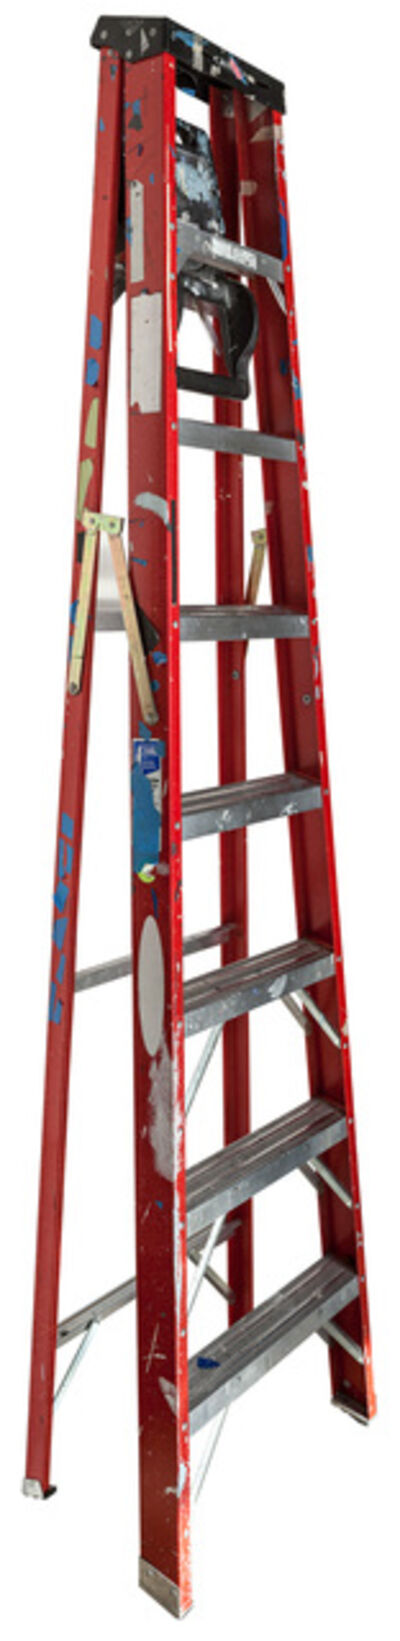 Jennifer Williams, 'Large Folding Ladder: Red with Black Top and Tape', 2014